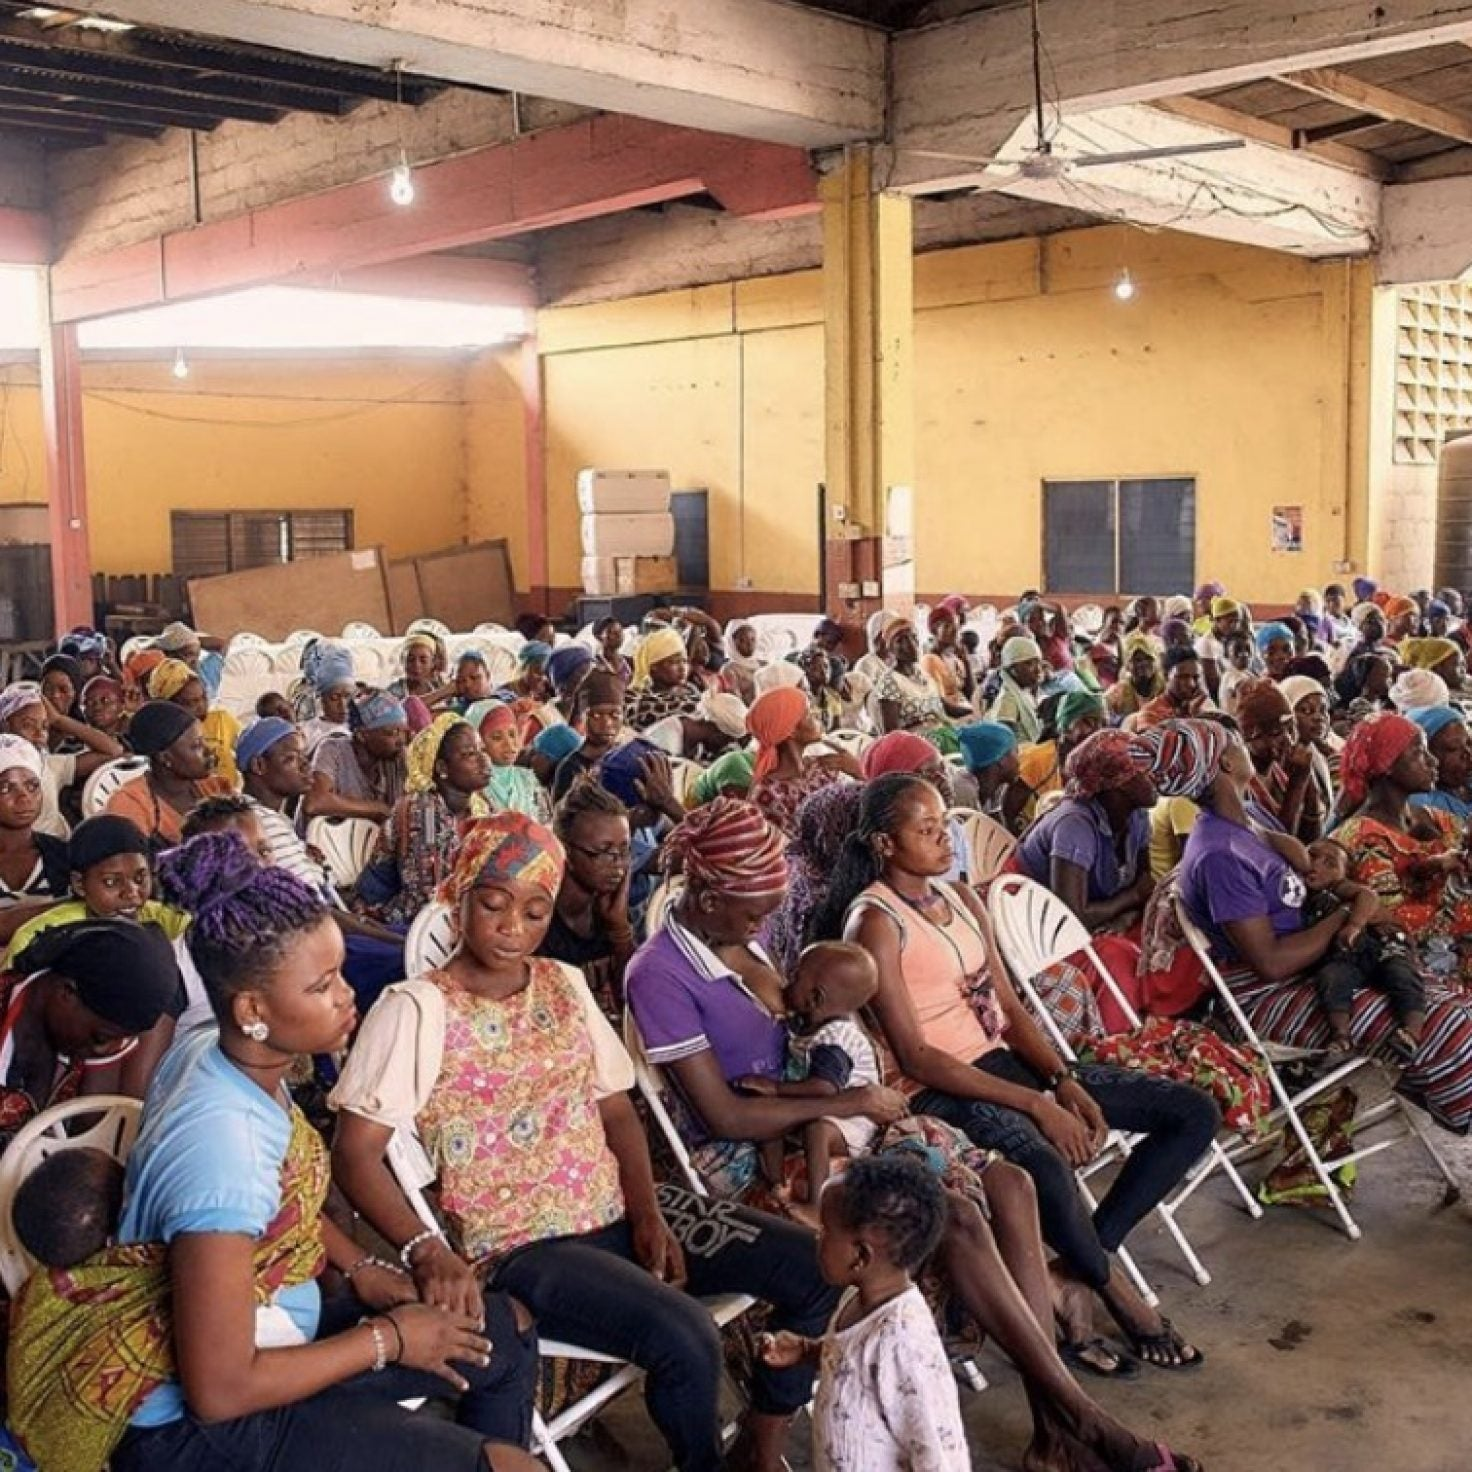 ESSENCE Full Circle Festival Offered Free Health Screenings For Women In Ghana, Discussions Around Ending Period Poverty & More